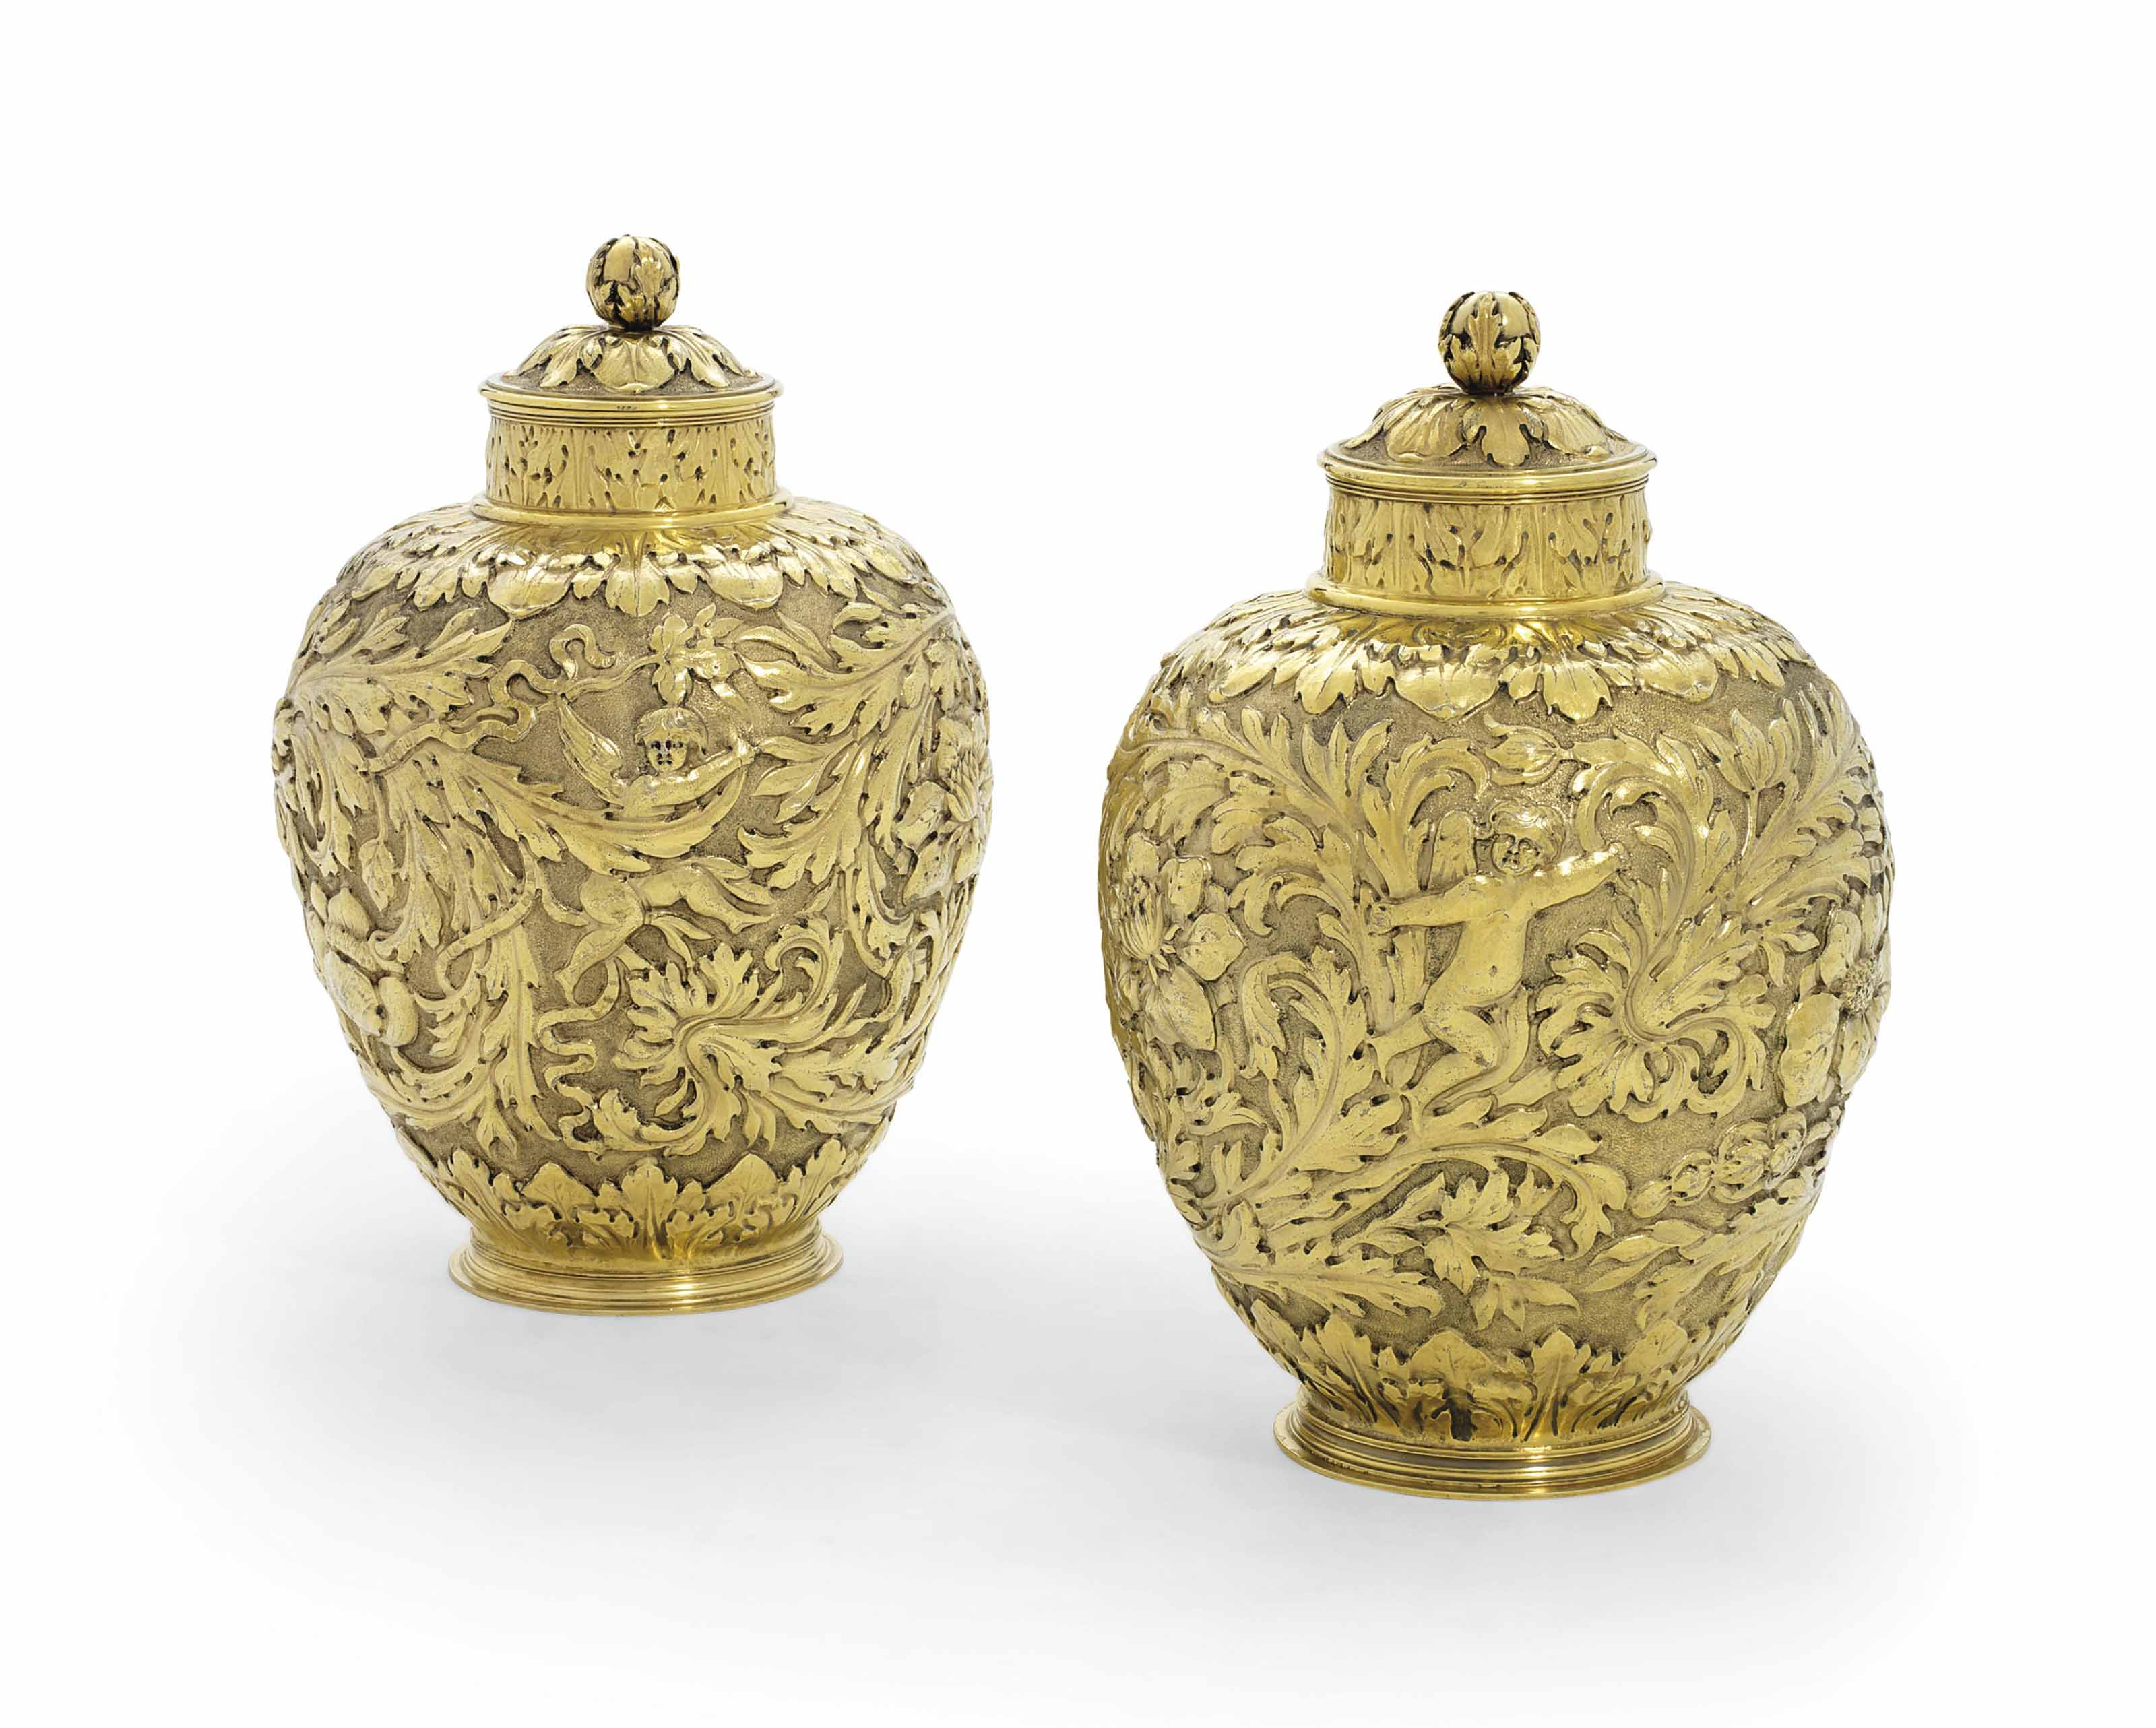 A PAIR OF GEORGE V SILVER-GILT FURNISHING-VASES